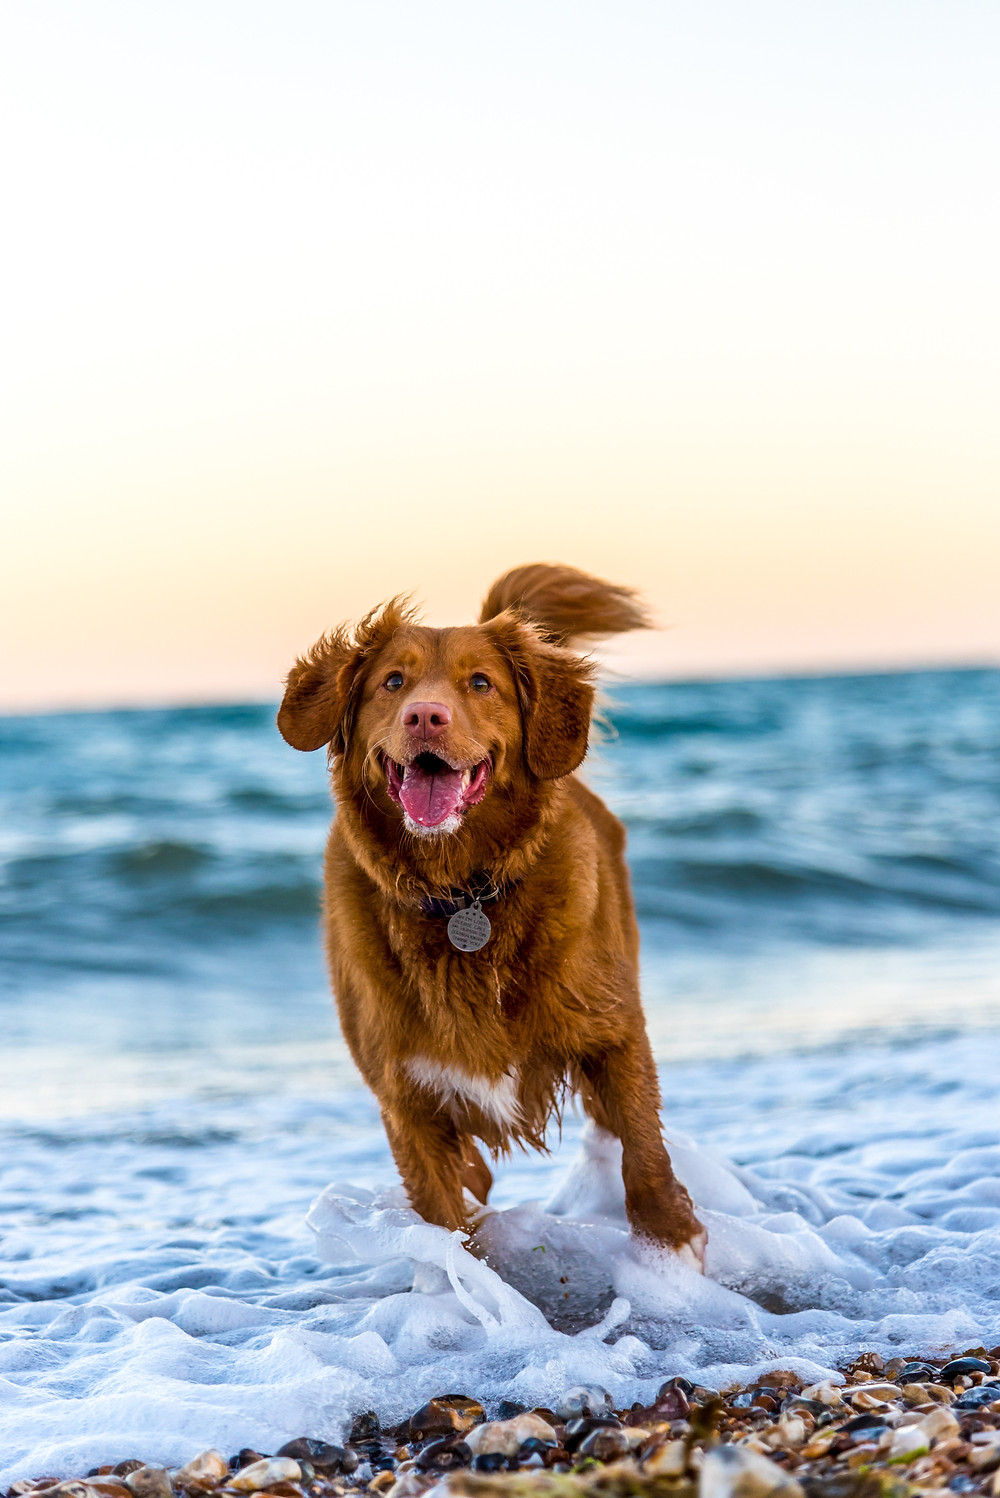 A dog running through the beach shore and his paws are in the water